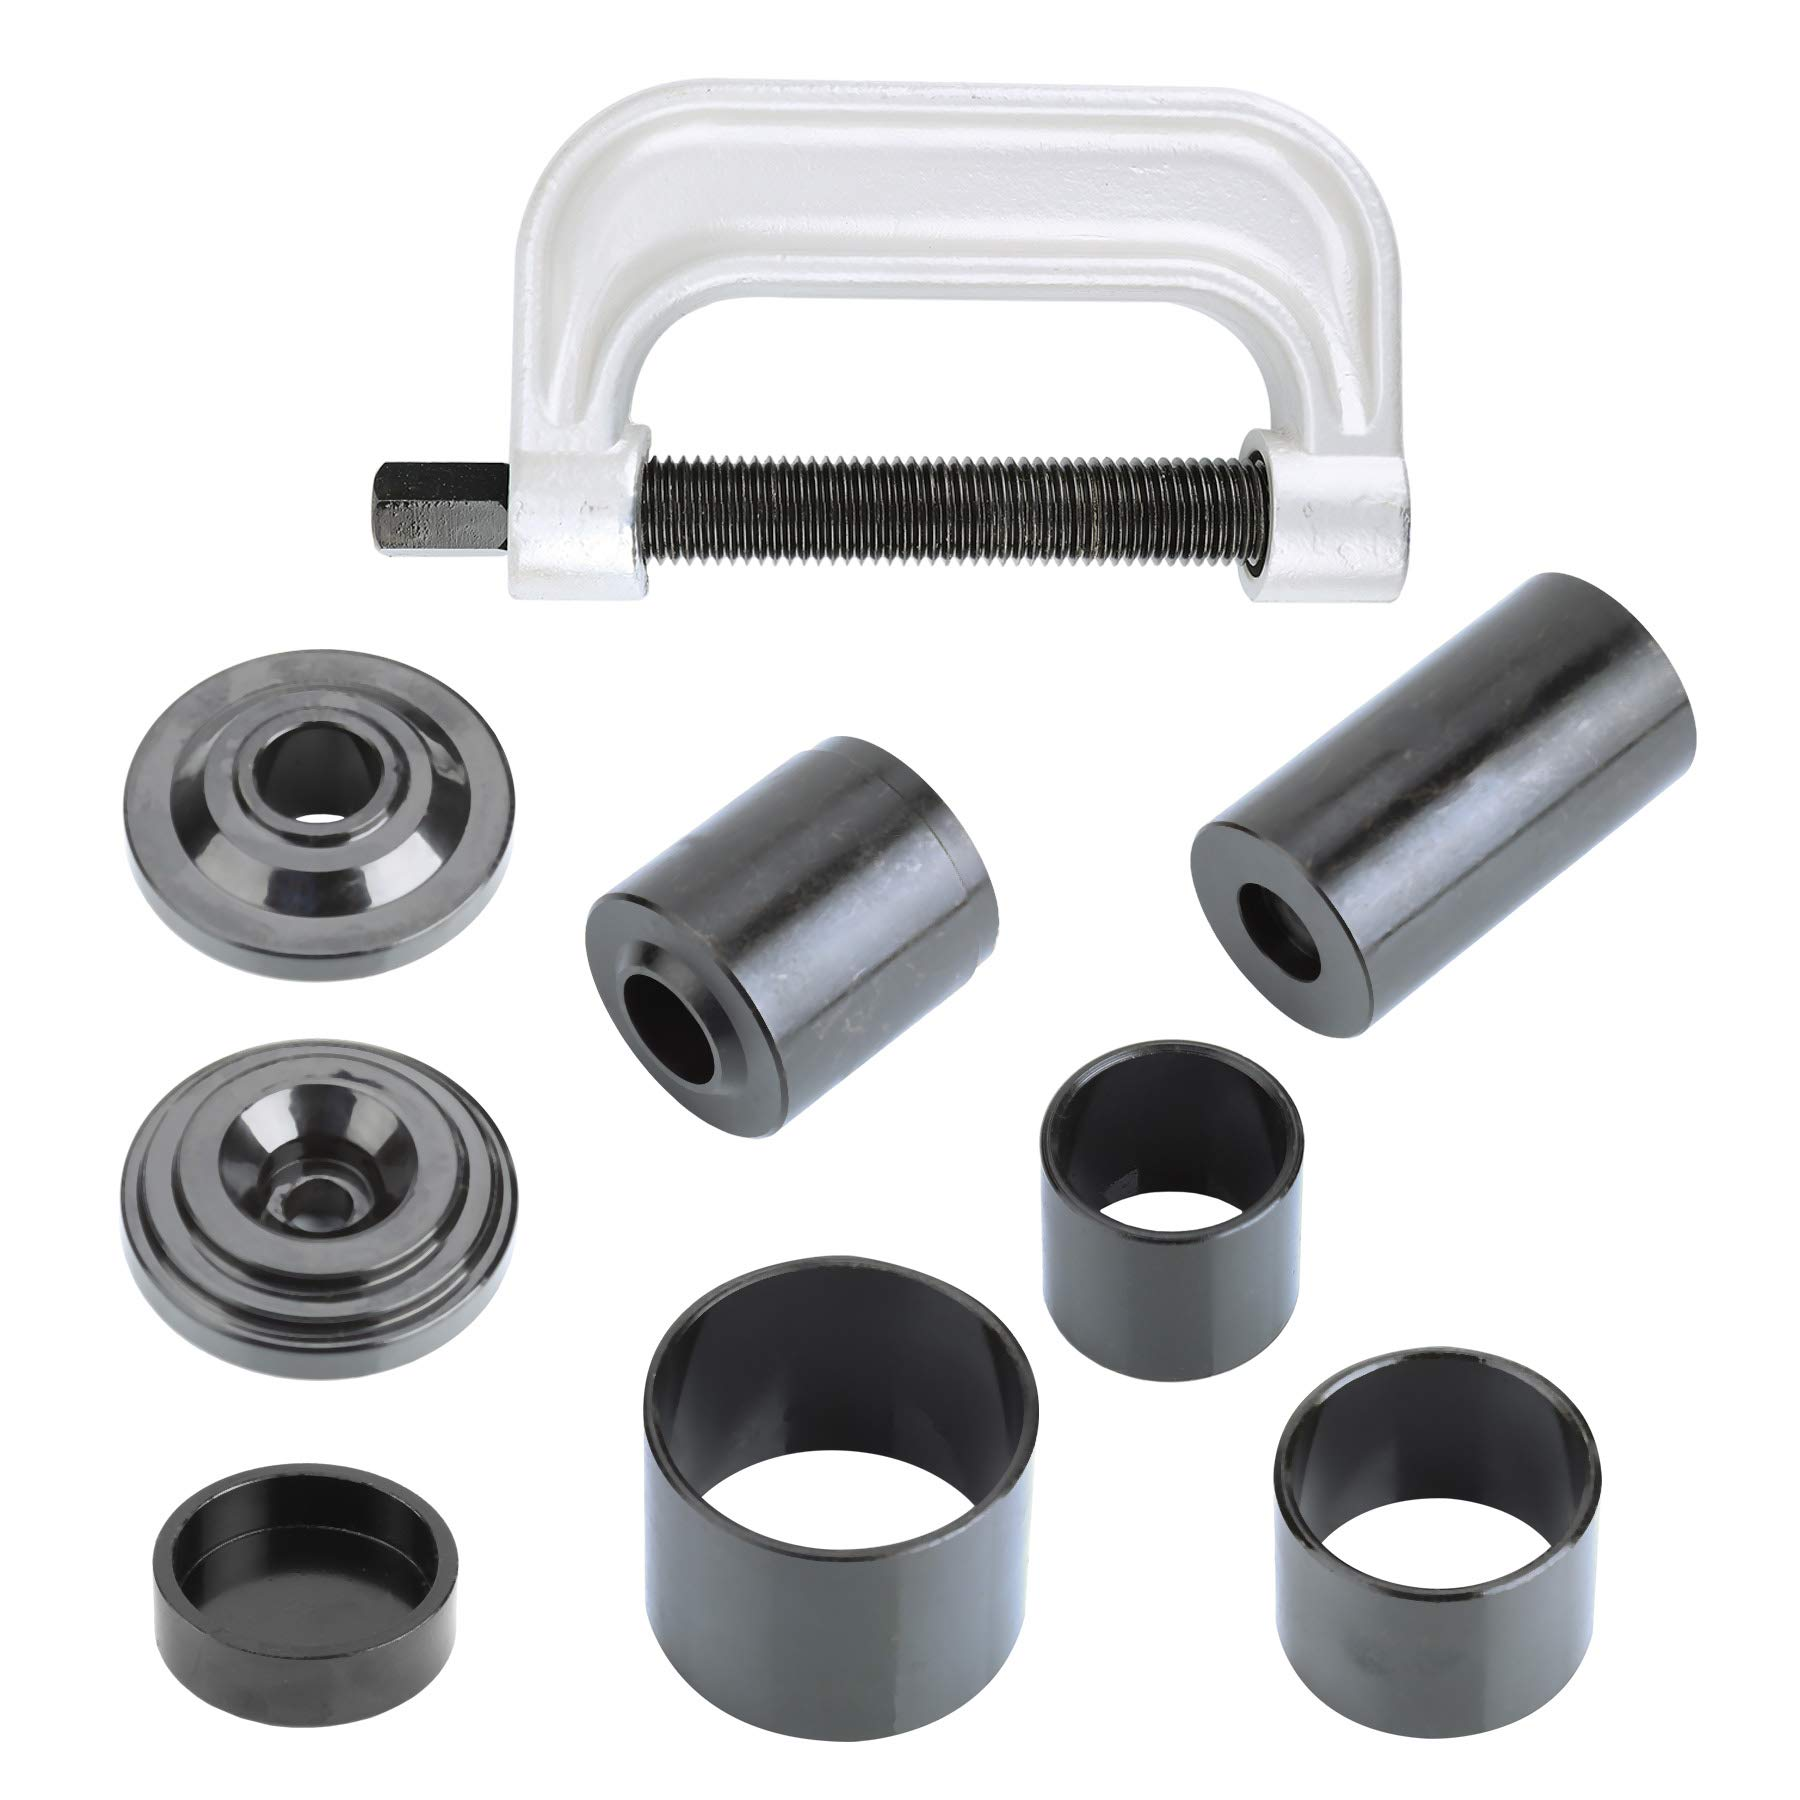 OrionMotorTech Heavy Duty Ball Joint Press & U Joint Removal Tool Kit with 4wd Adapters, for Most 2WD and 4WD Cars and Light Trucks (BK) by OrionMotorTech (Image #8)